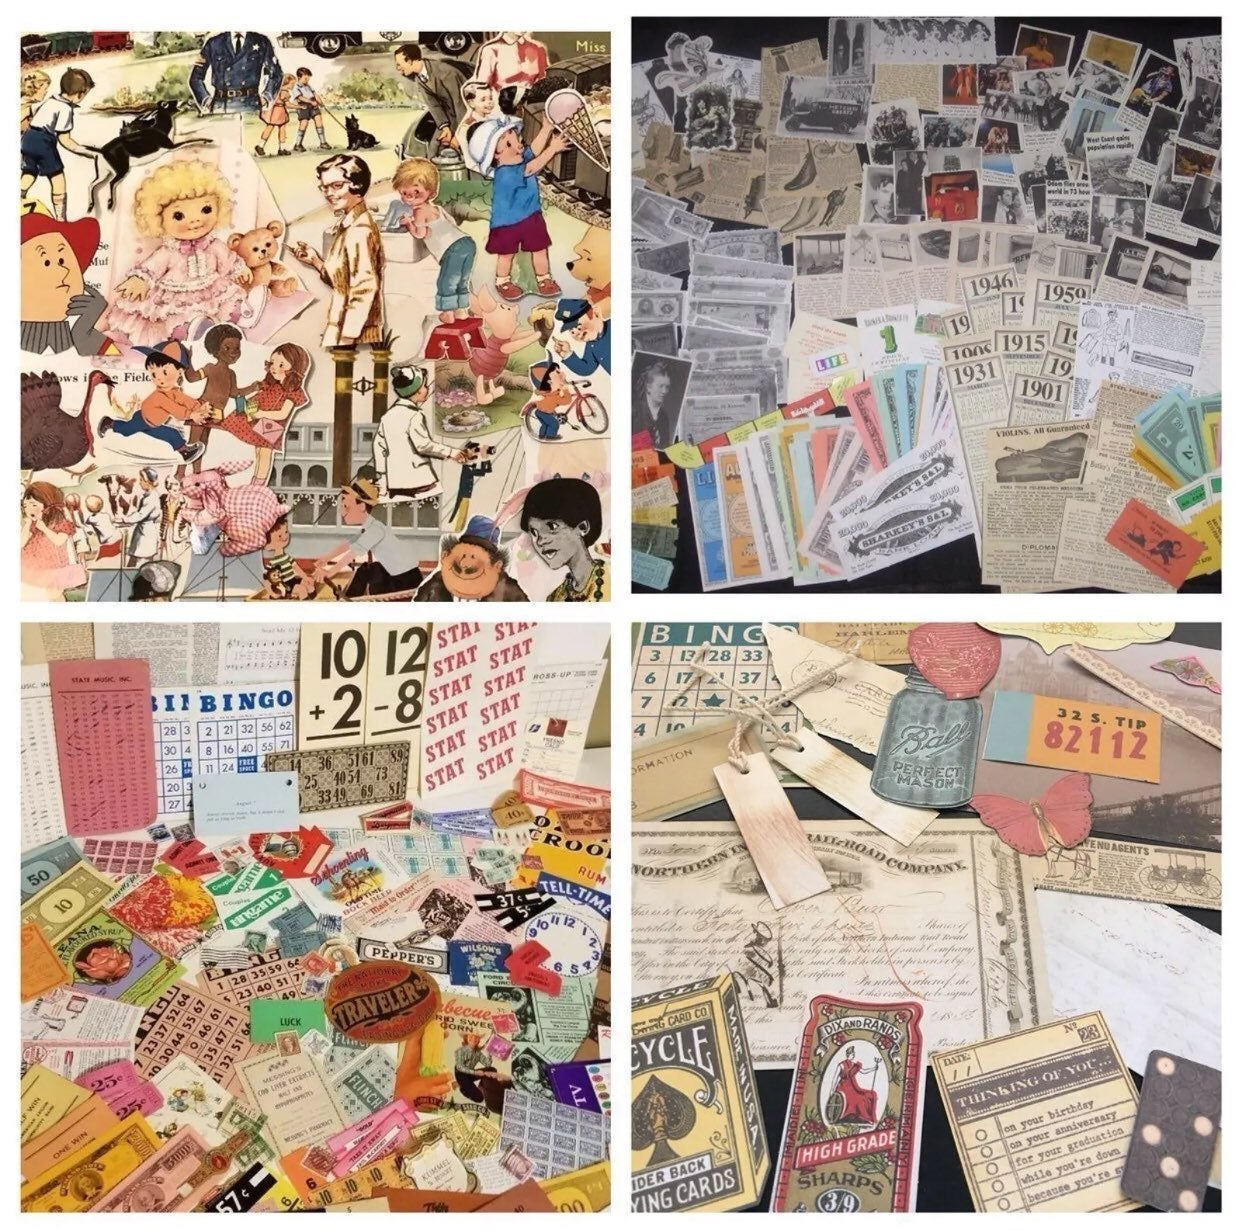 50 Pc EPHEMERA MEDIA ART SCRAPBOOKING